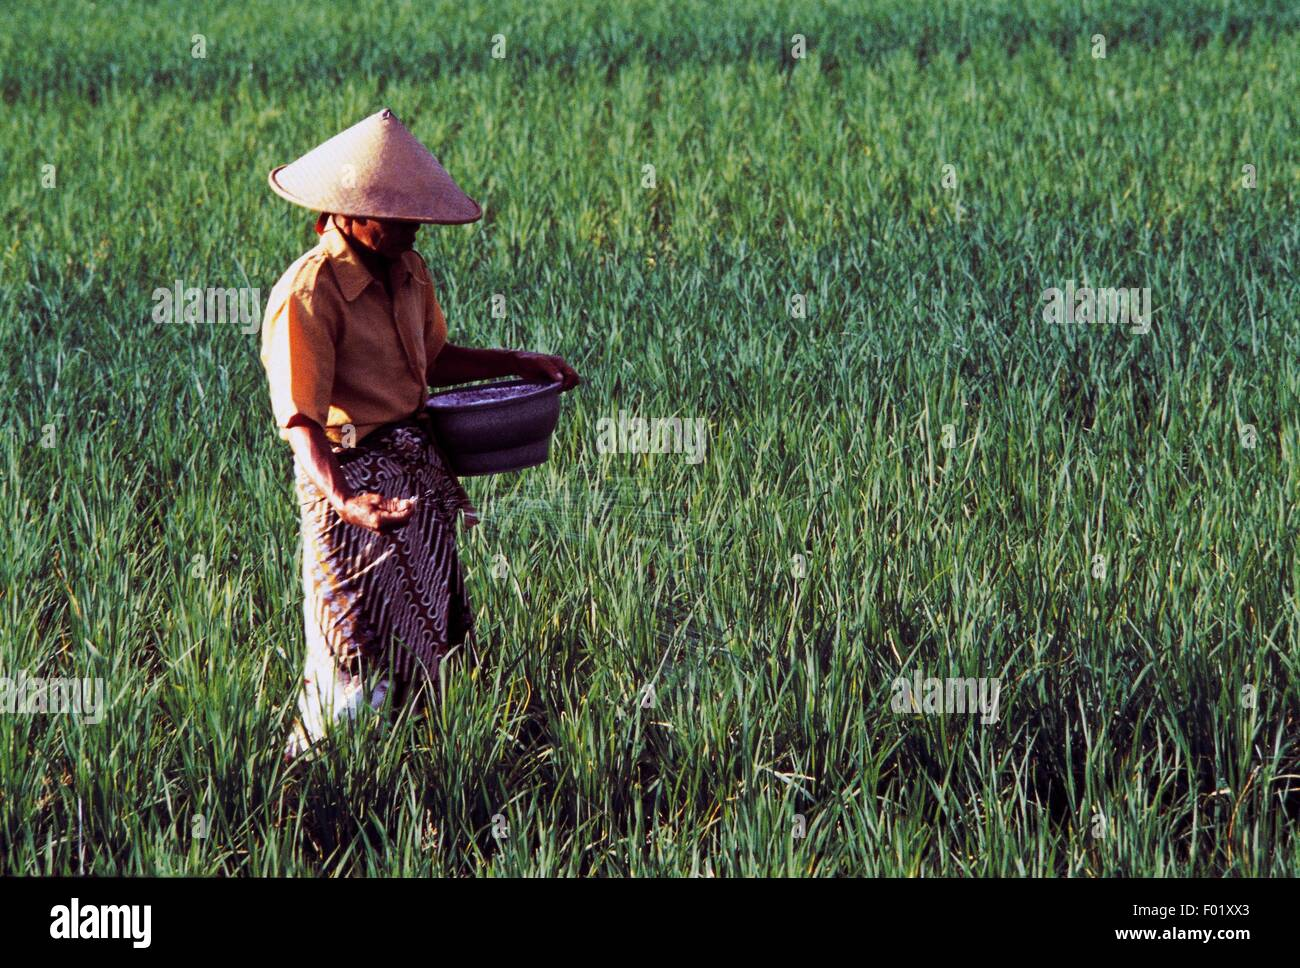 Peasant in a paddy field, island of Java, Indonesia. - Stock Image